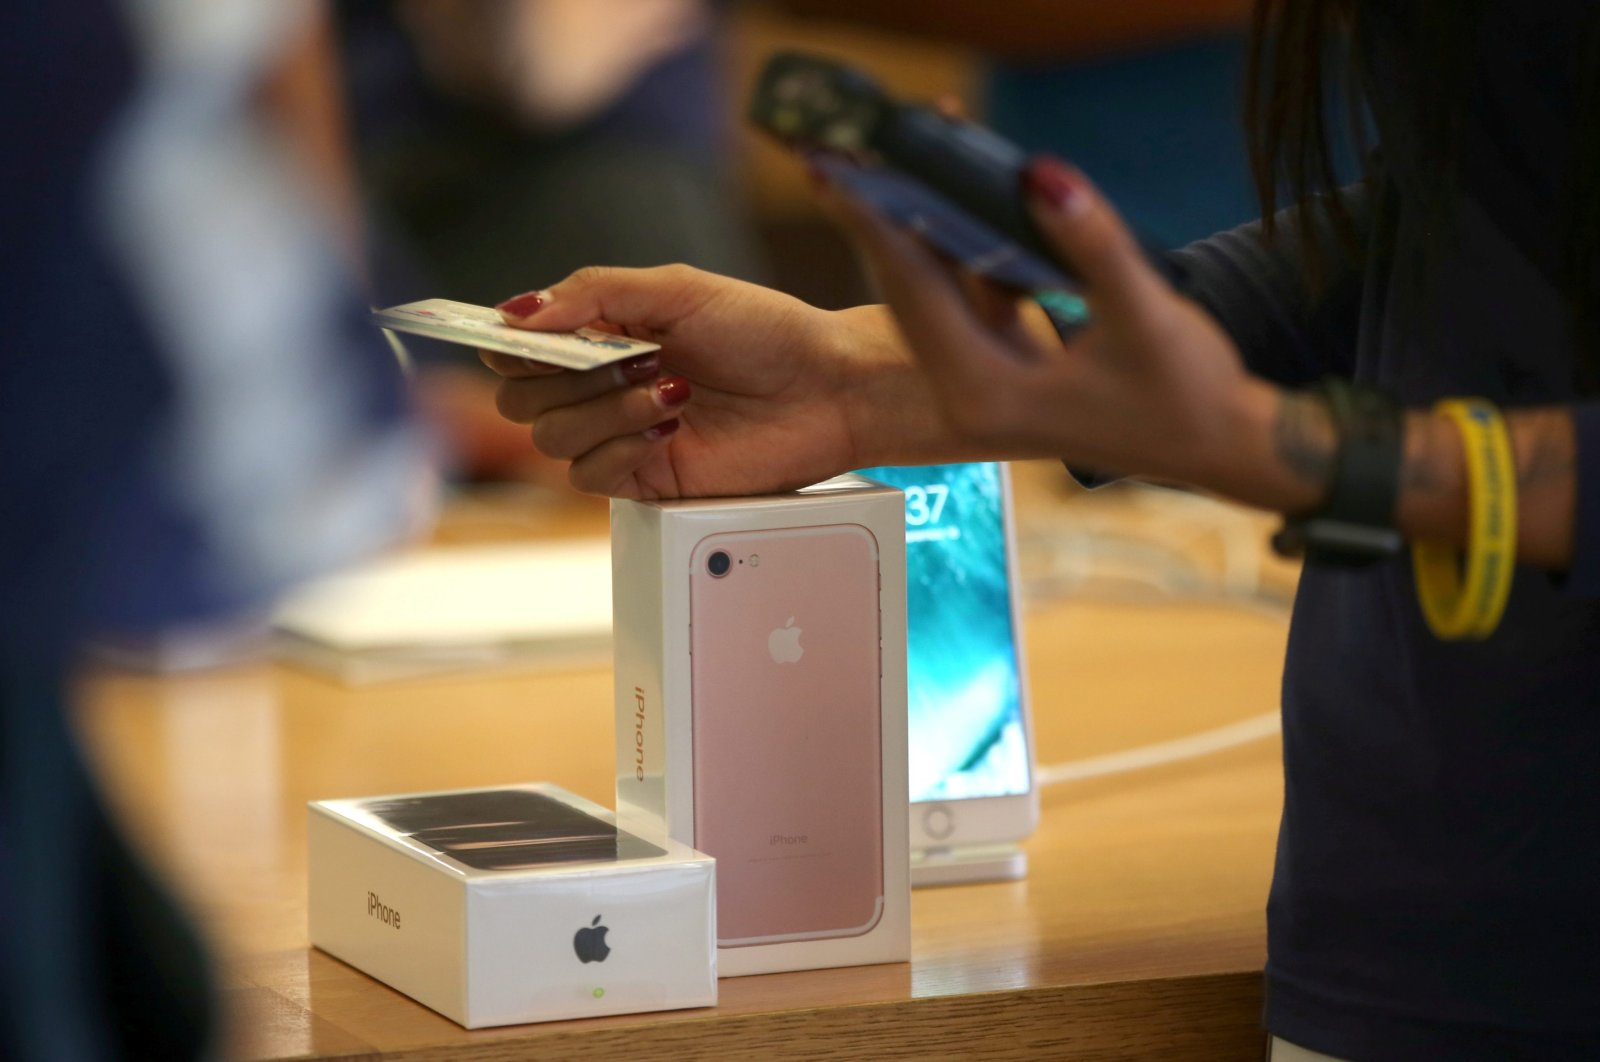 A customer buys the new iPhone 7 smartphone inside an Apple Inc. store in Los Angeles, California, U.S., Sept. 16, 2016. (Reuters Photo)